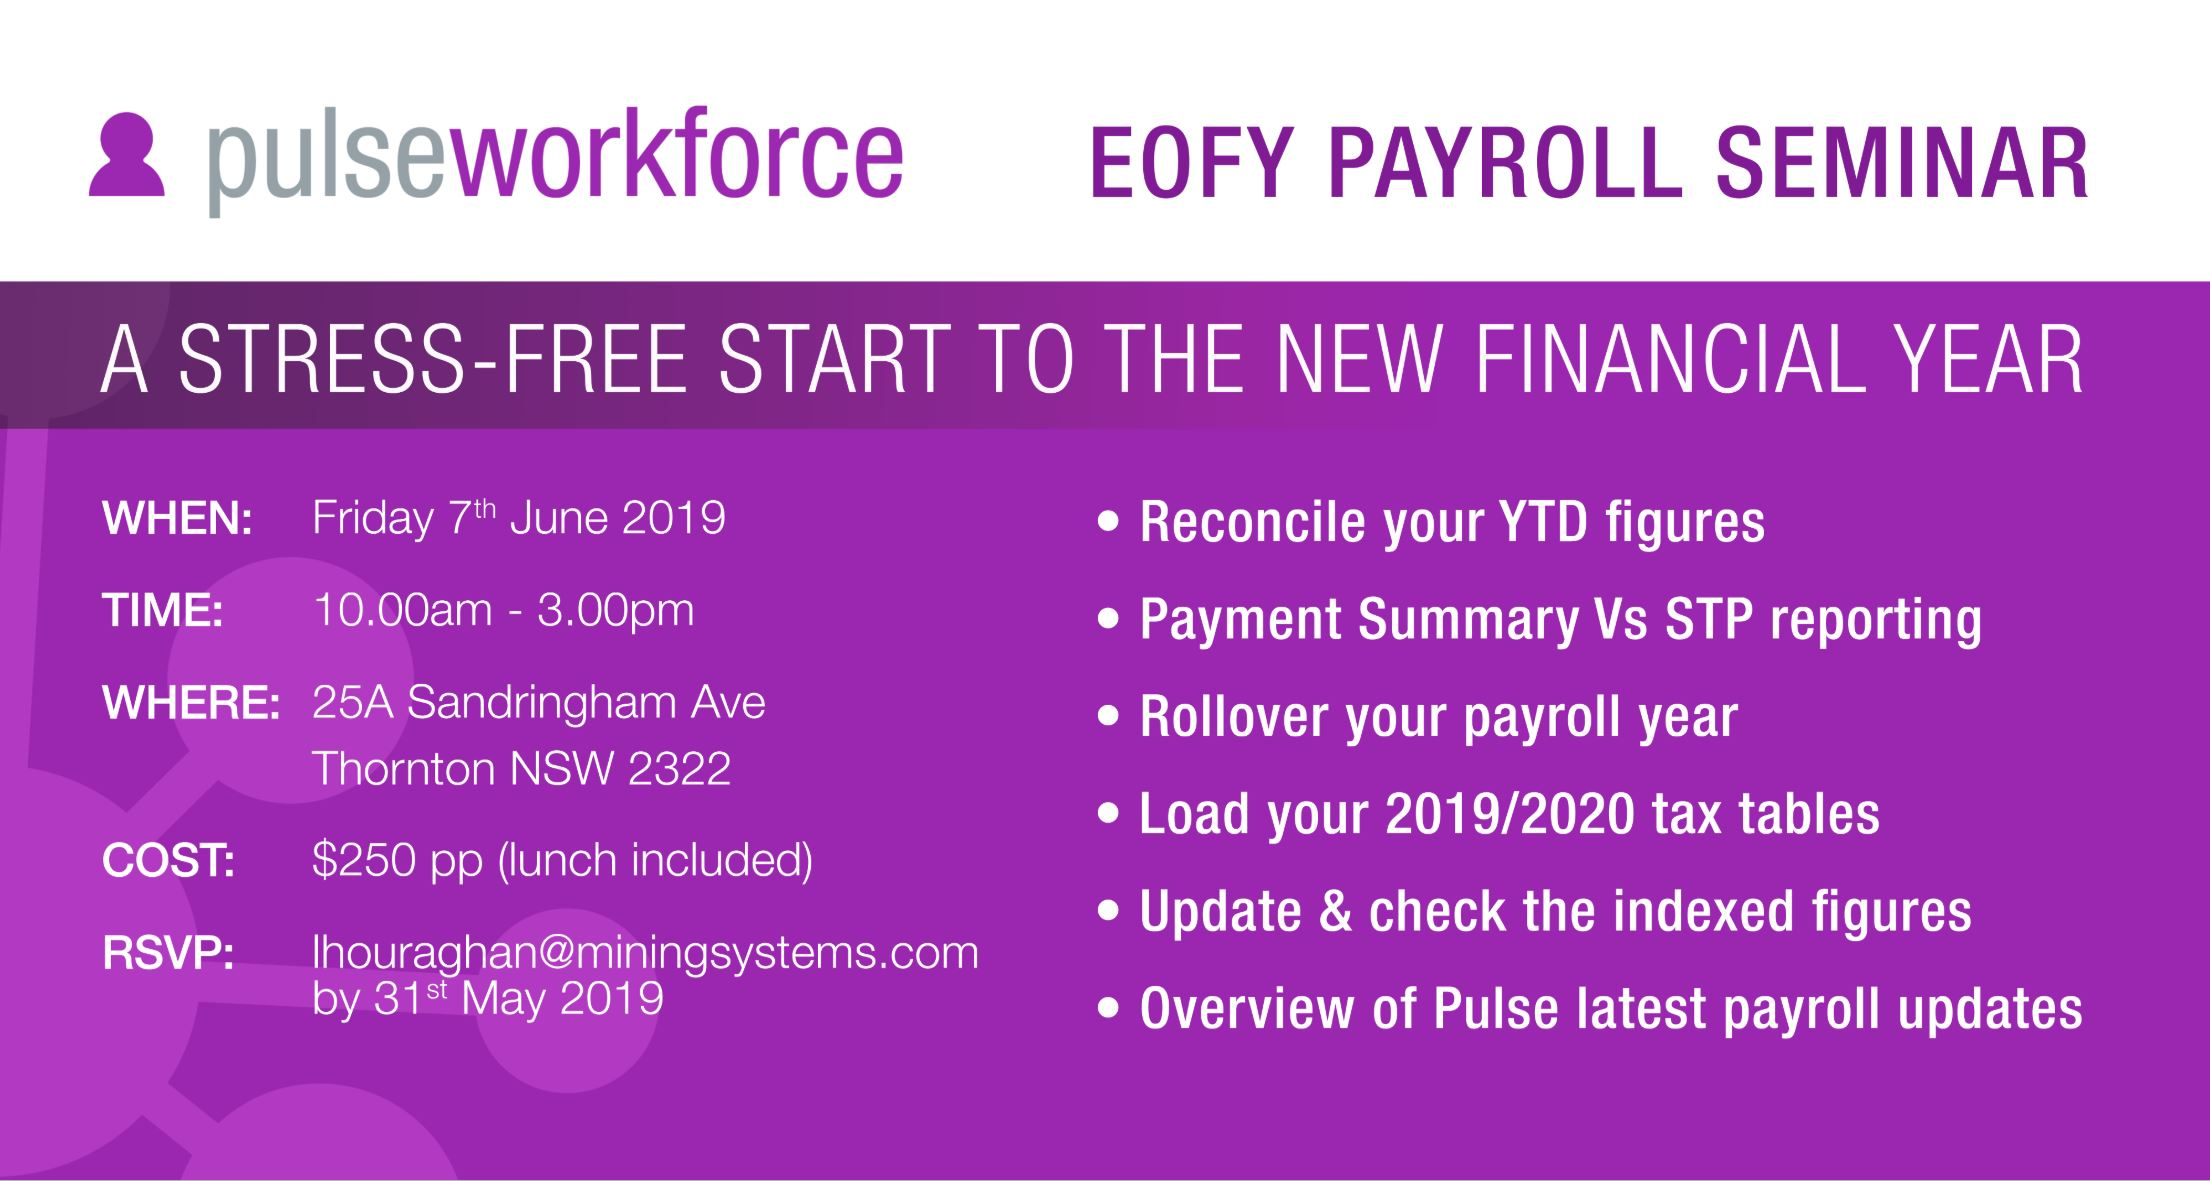 Pulse EOFY 2019 Payroll Seminar Invitation